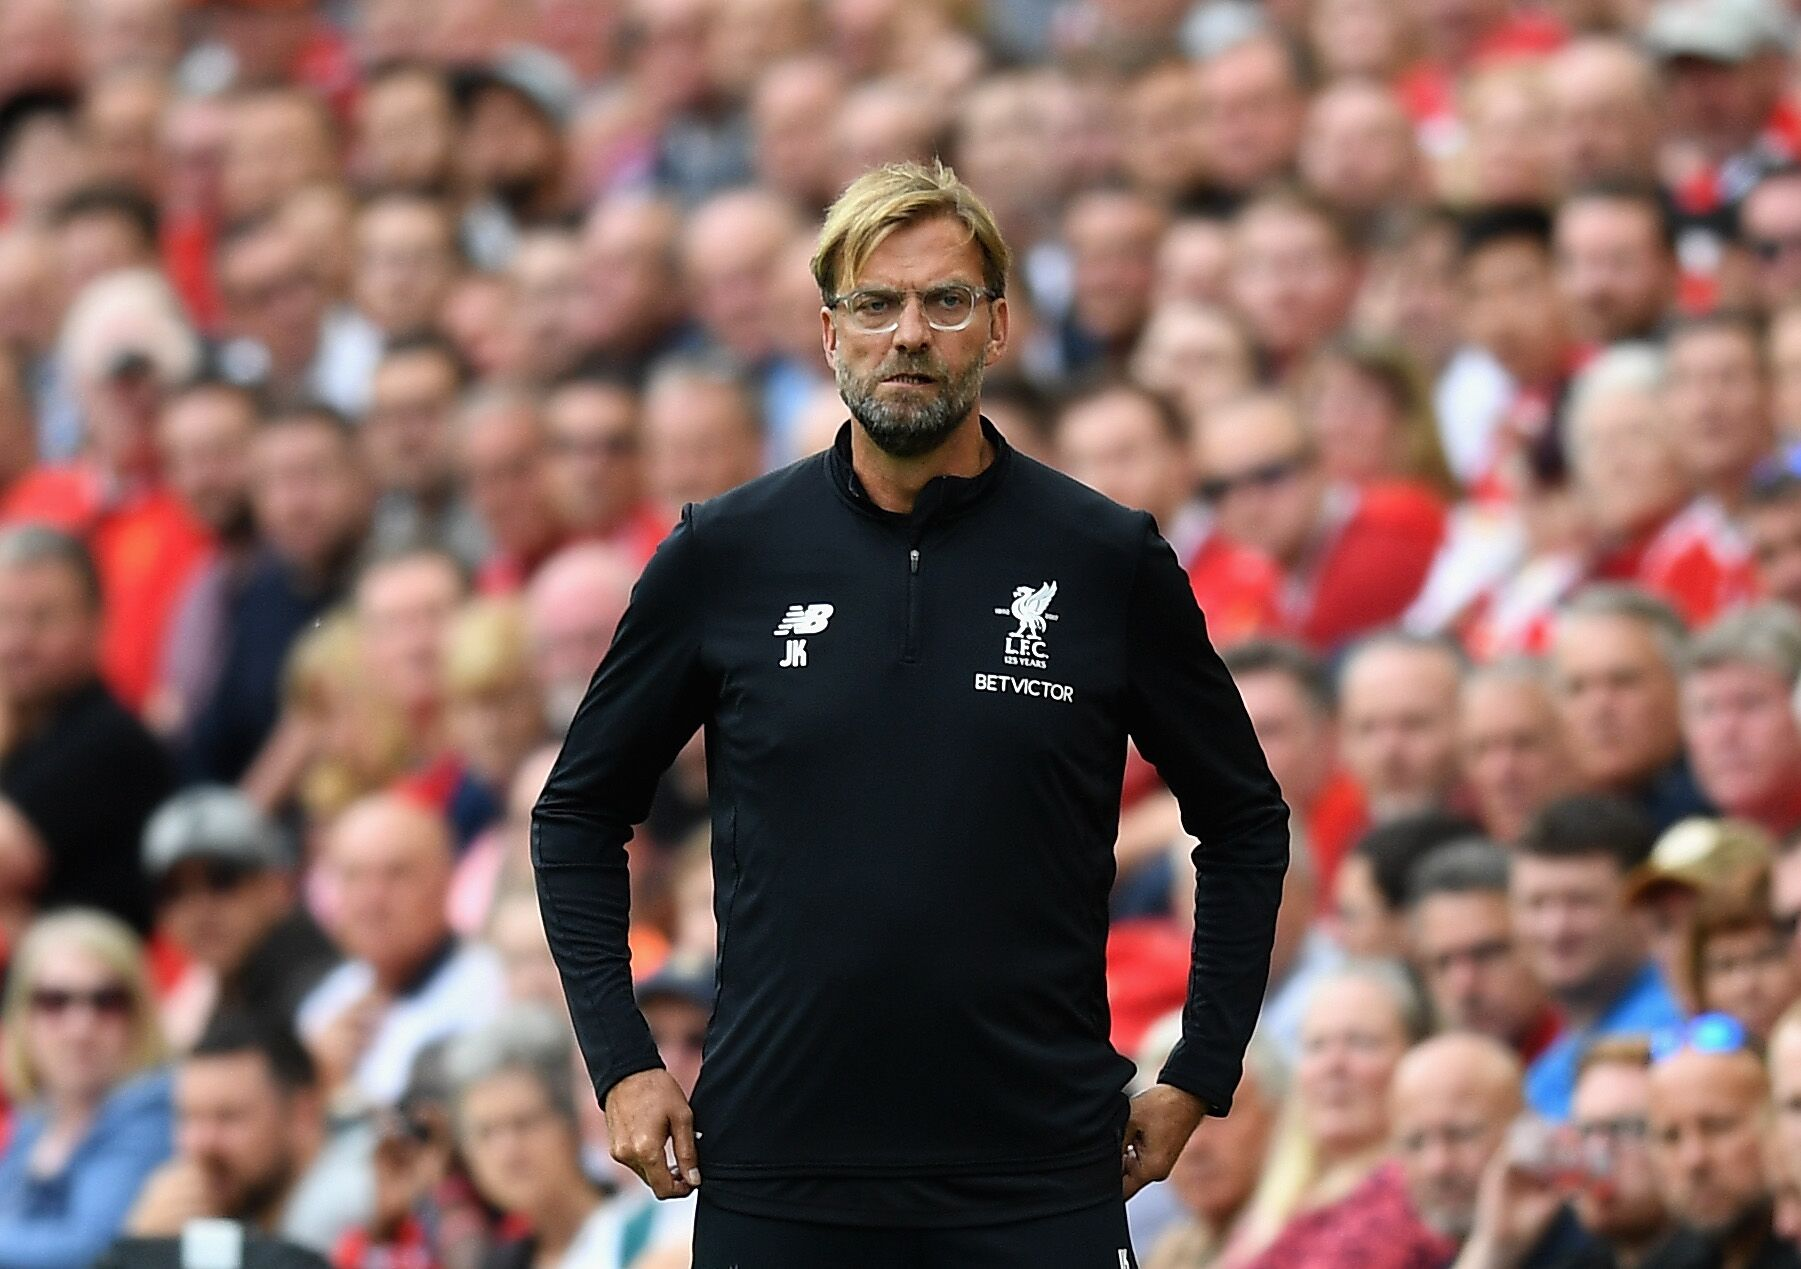 'Man up!' 'Sell him' 'Snake' Liverpool fans react to Klopp's City squad decision